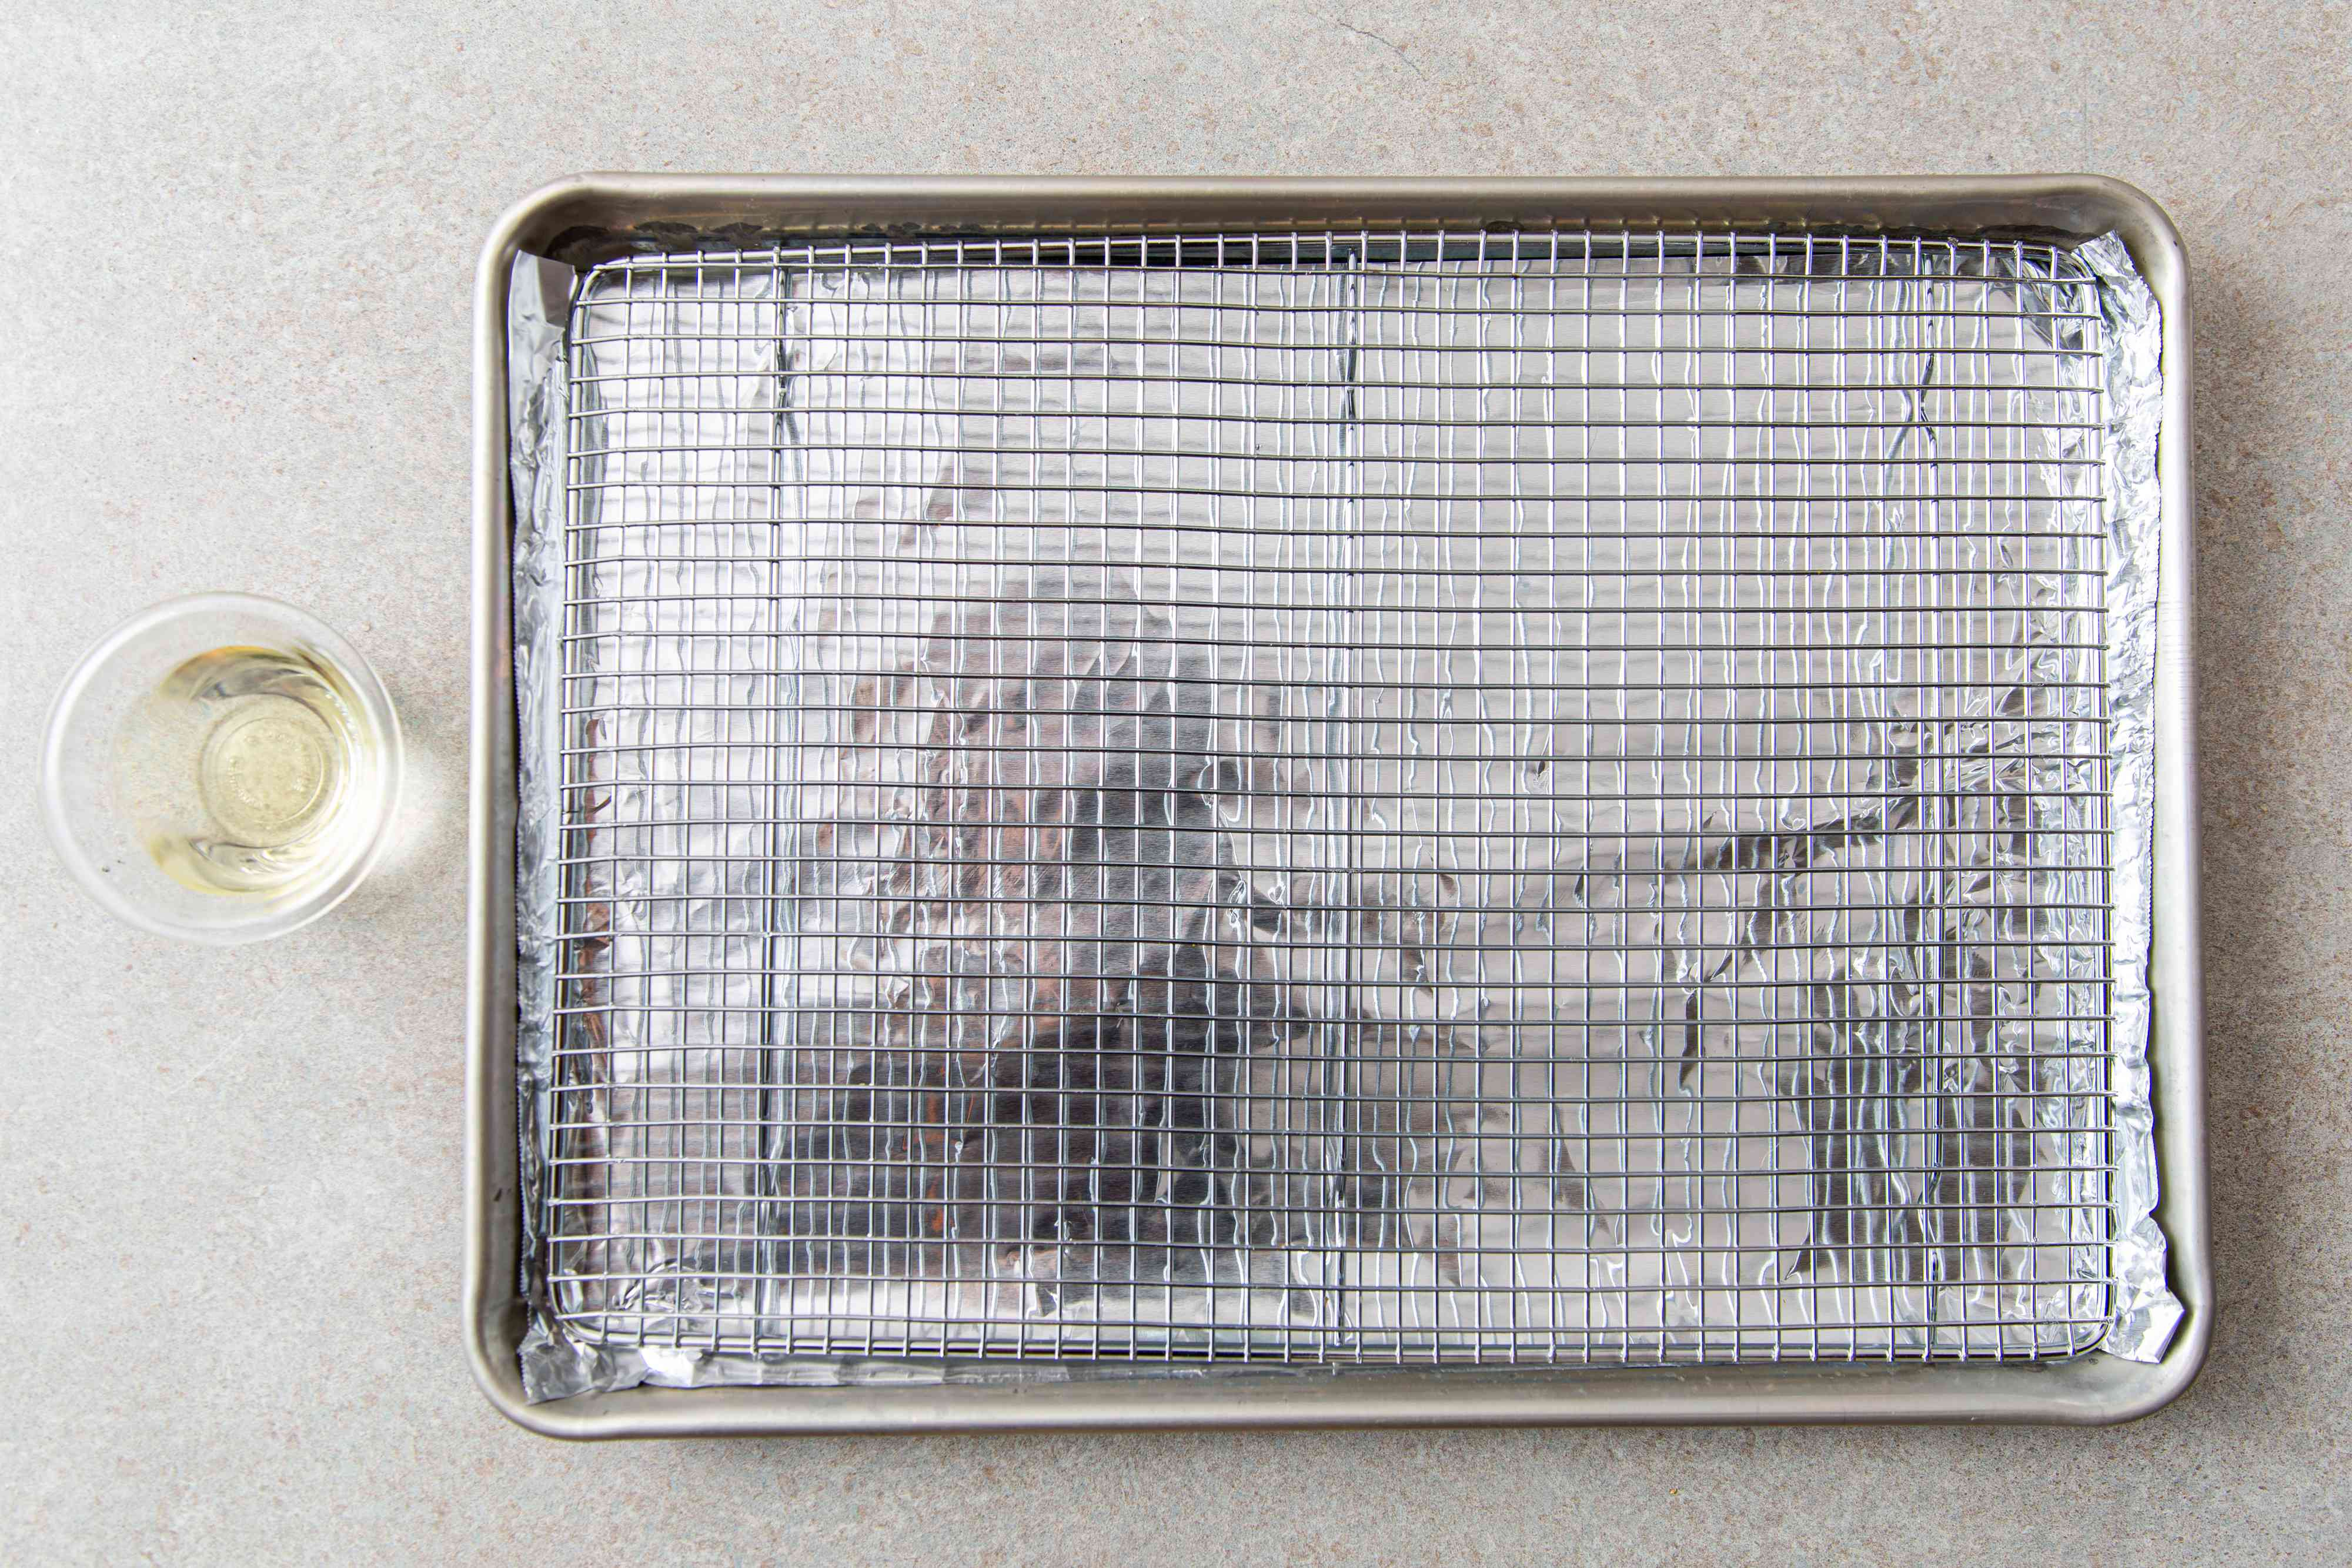 Metal wire rack and aluminum foil on top of a sheet pan